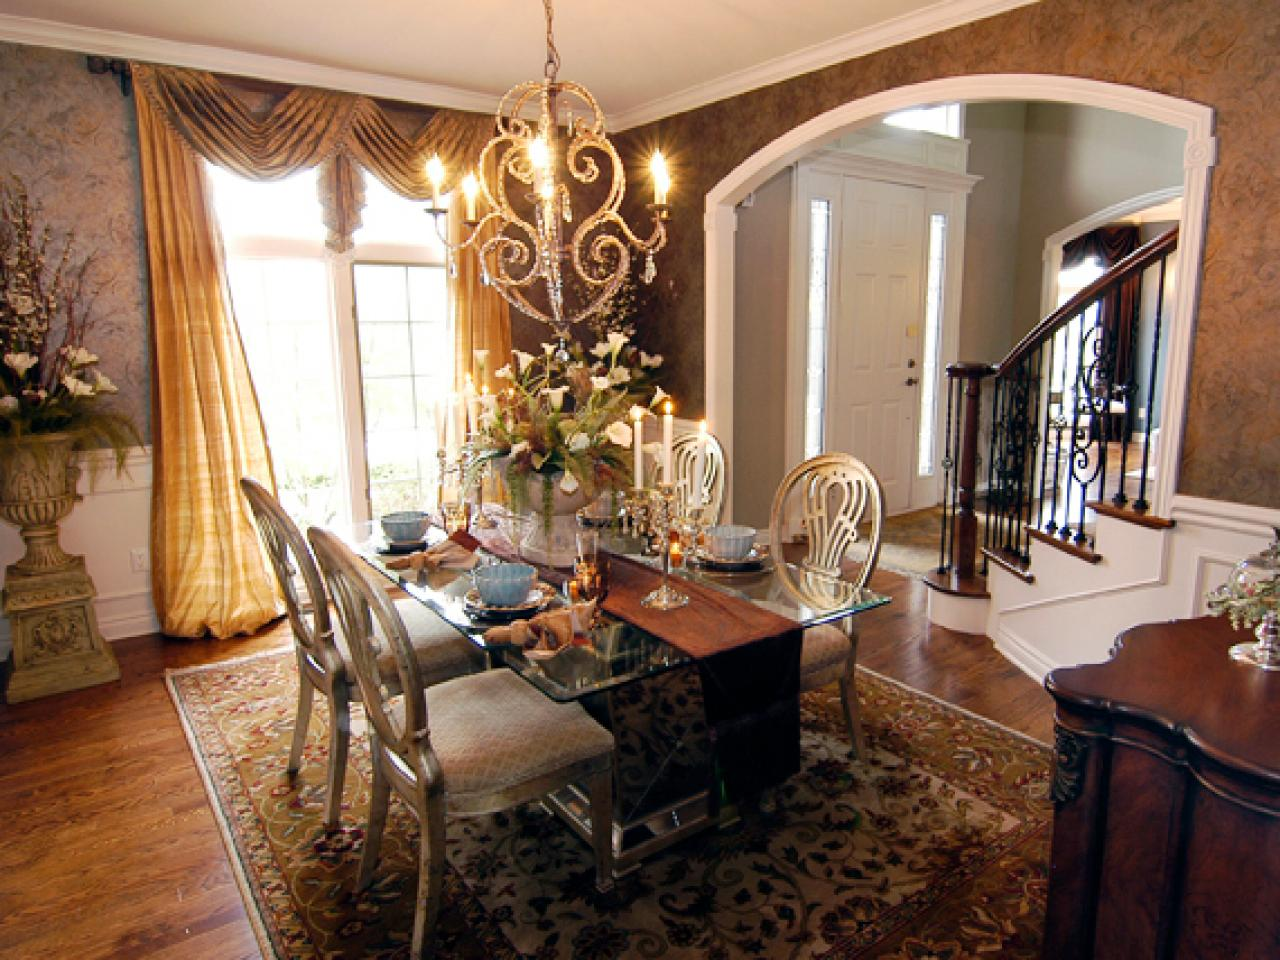 Budget friendly dining room updates from expert designers for Room decoration design